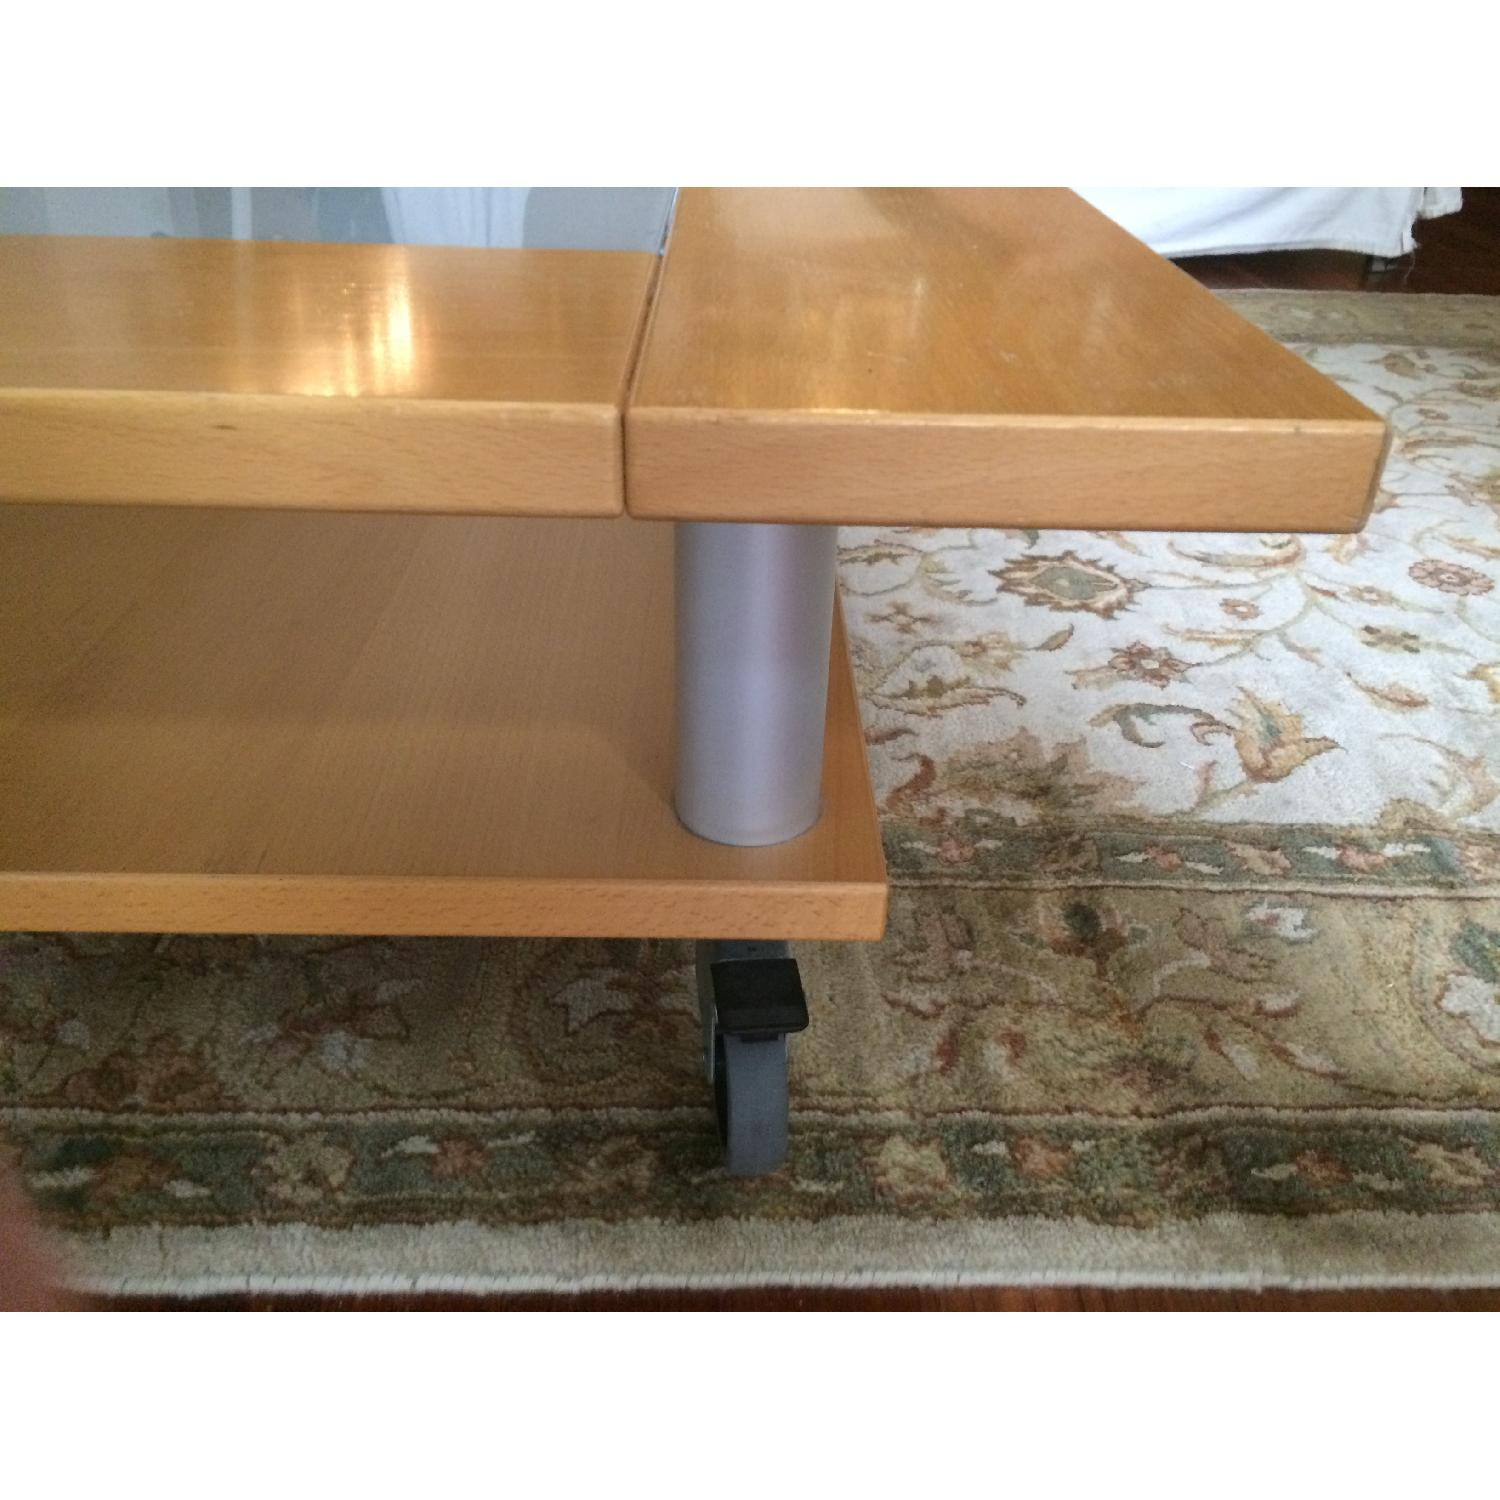 Two-Tier Coffee Table on Wheels - image-6